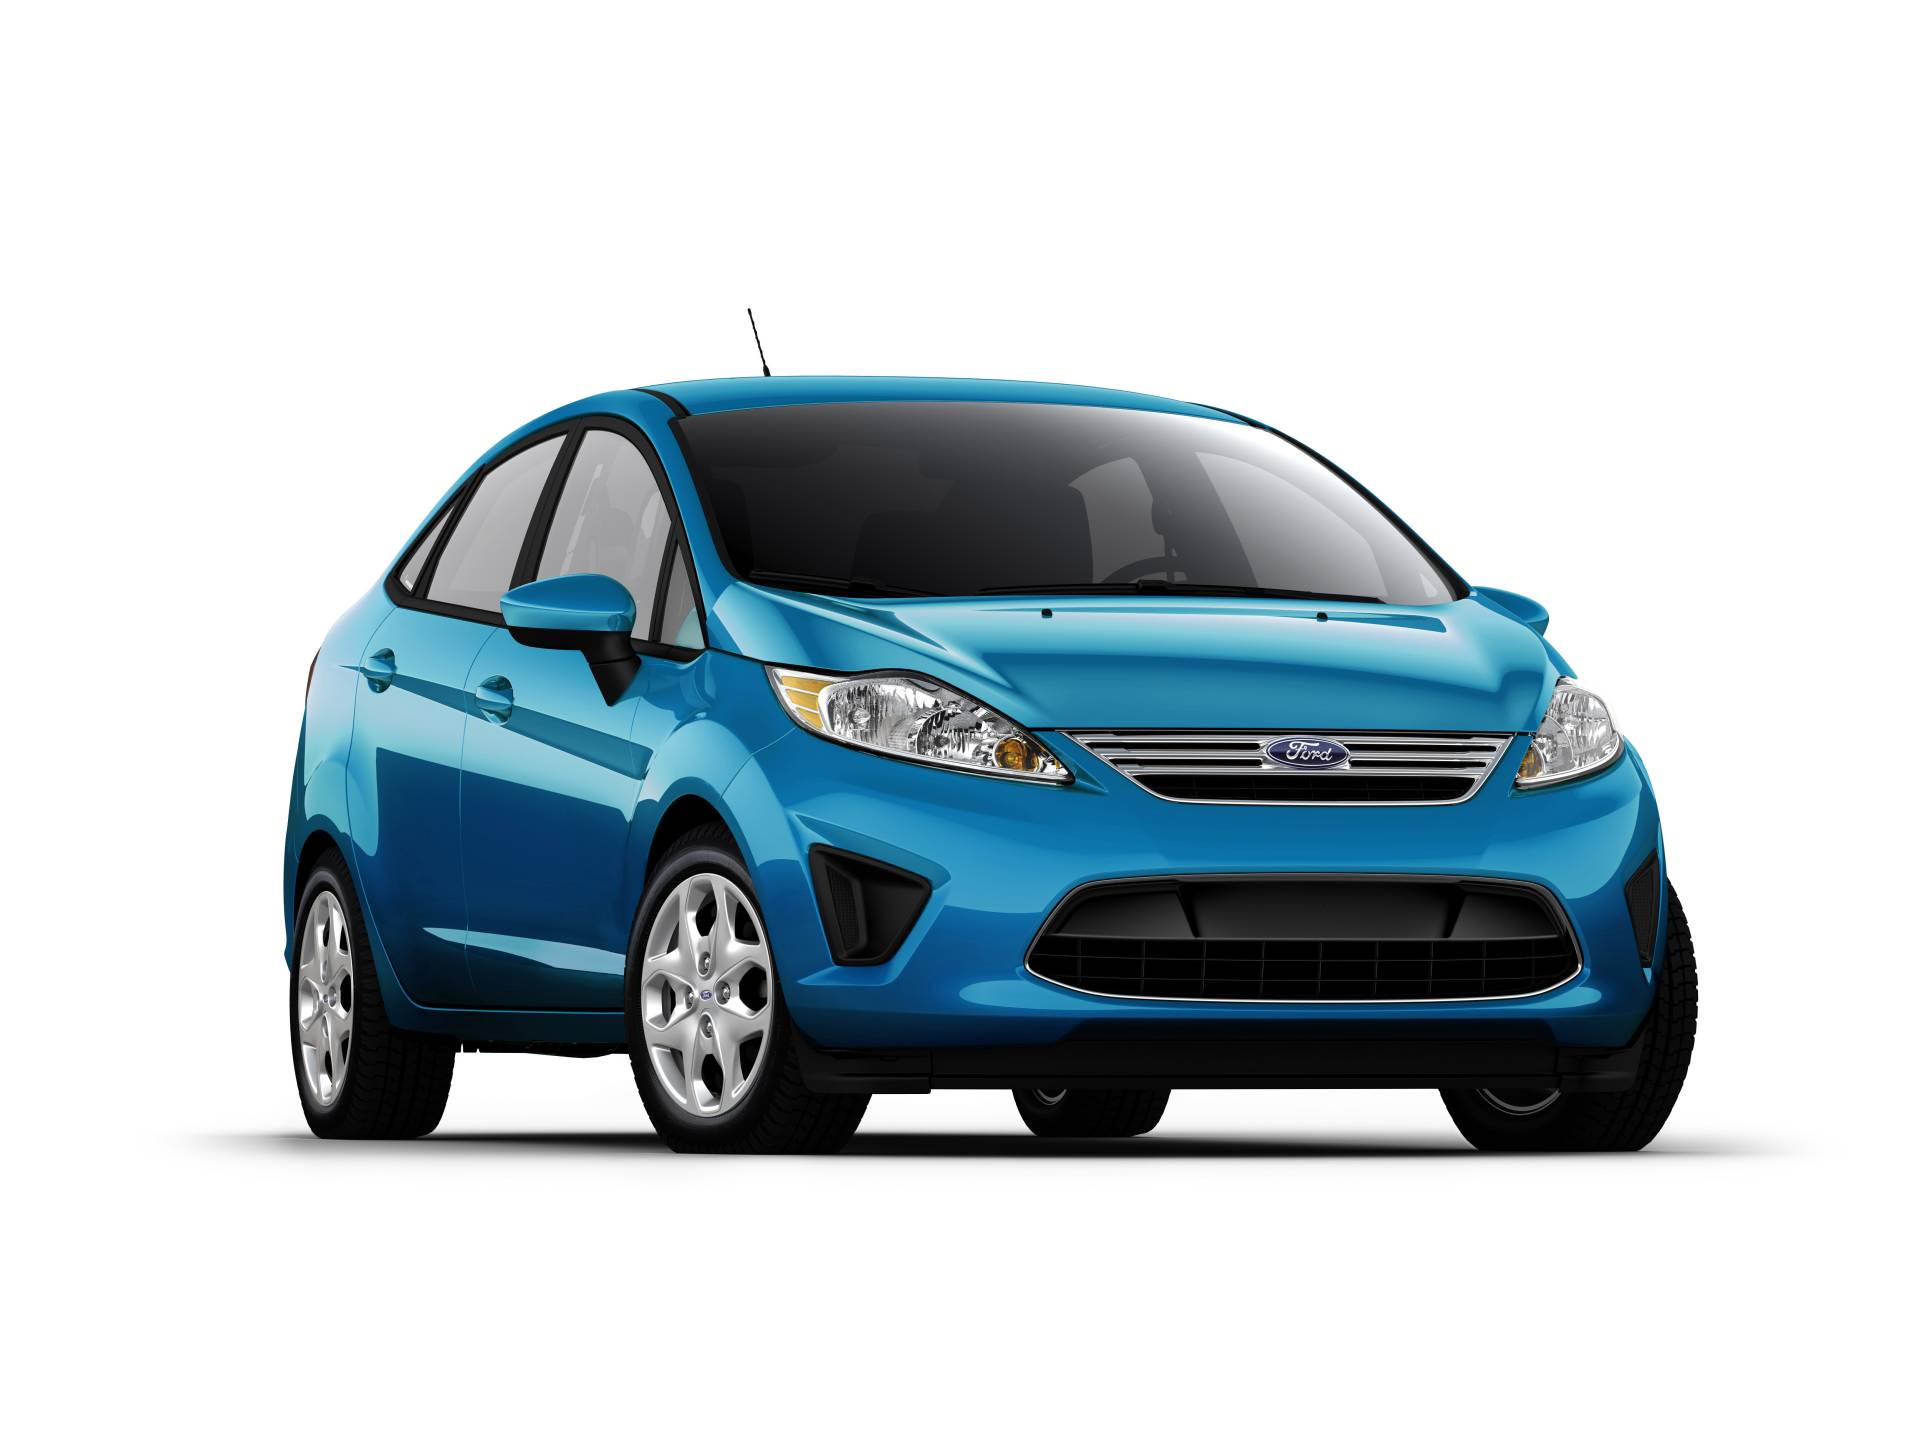 2013 ford fiesta technical specifications and data engine dimensions and mechanical details. Black Bedroom Furniture Sets. Home Design Ideas